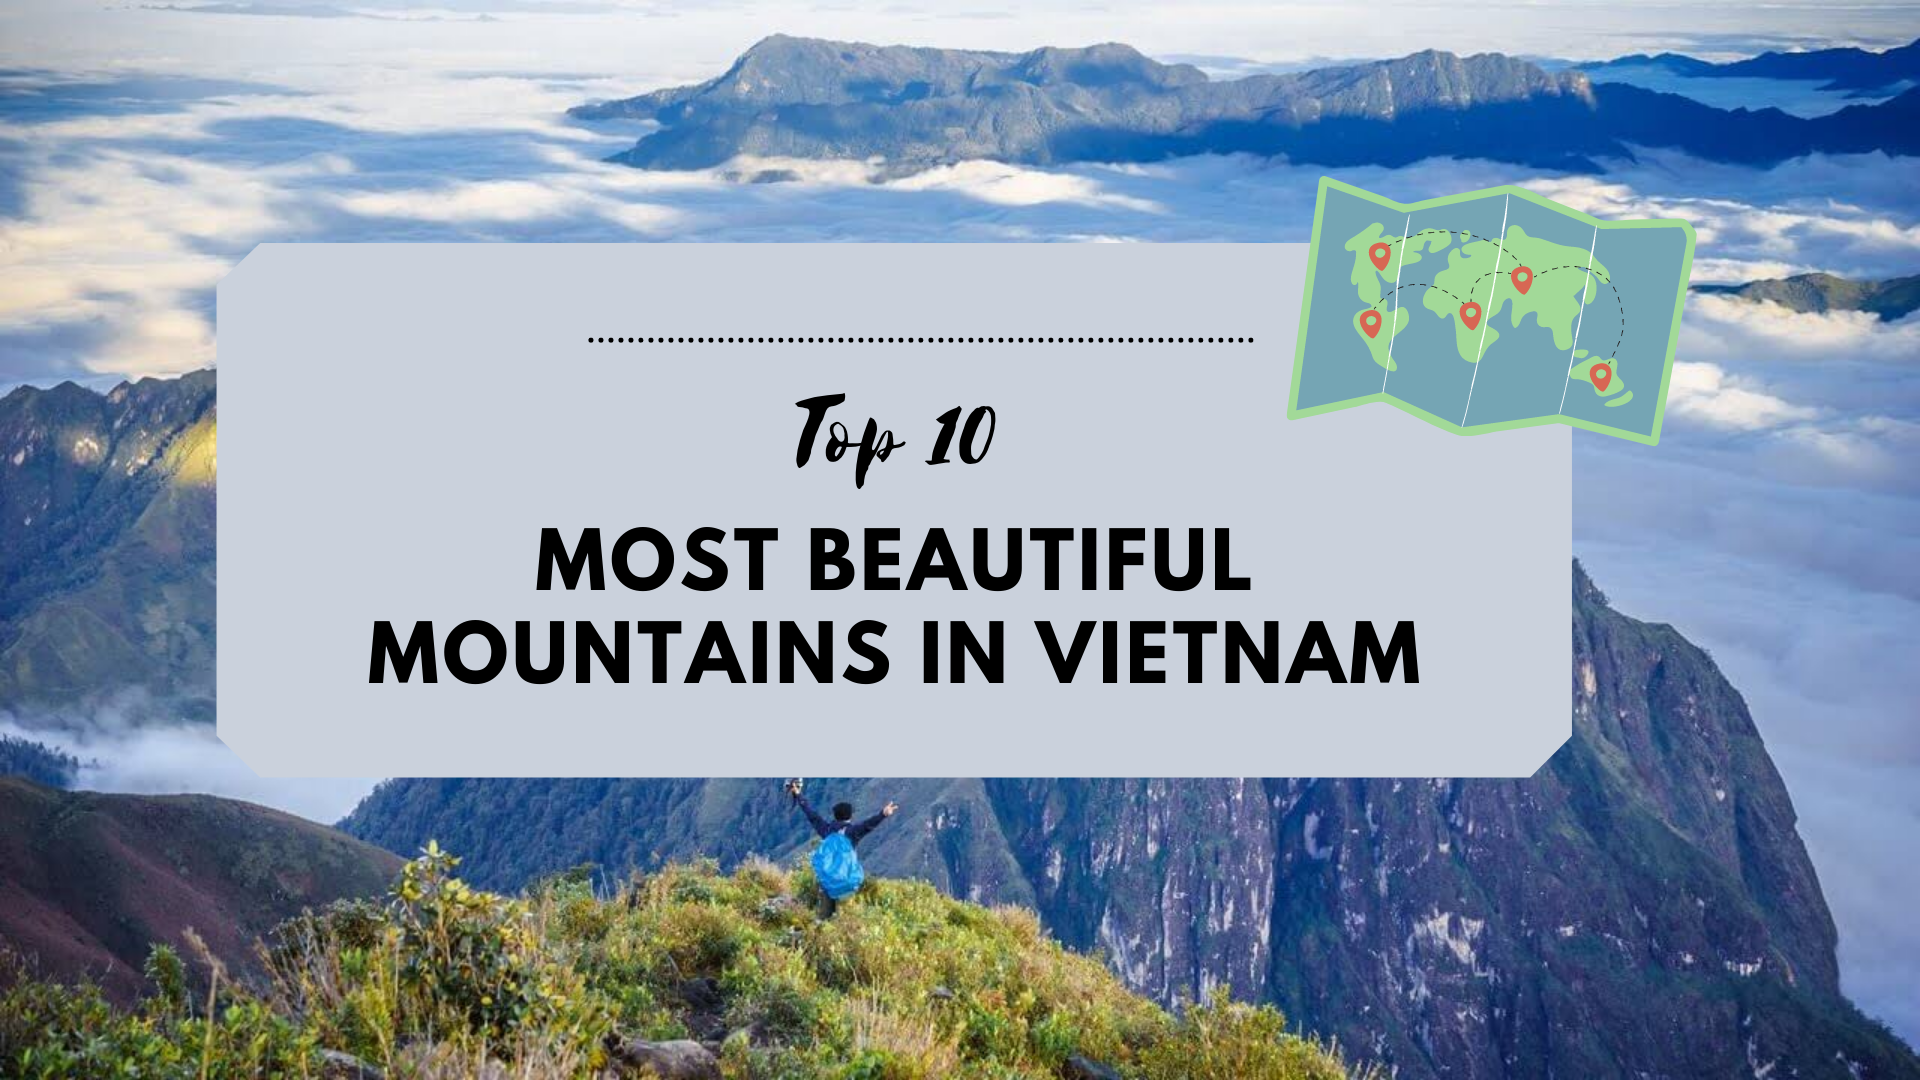 Top 10 most beautiful mountains in Vietnam